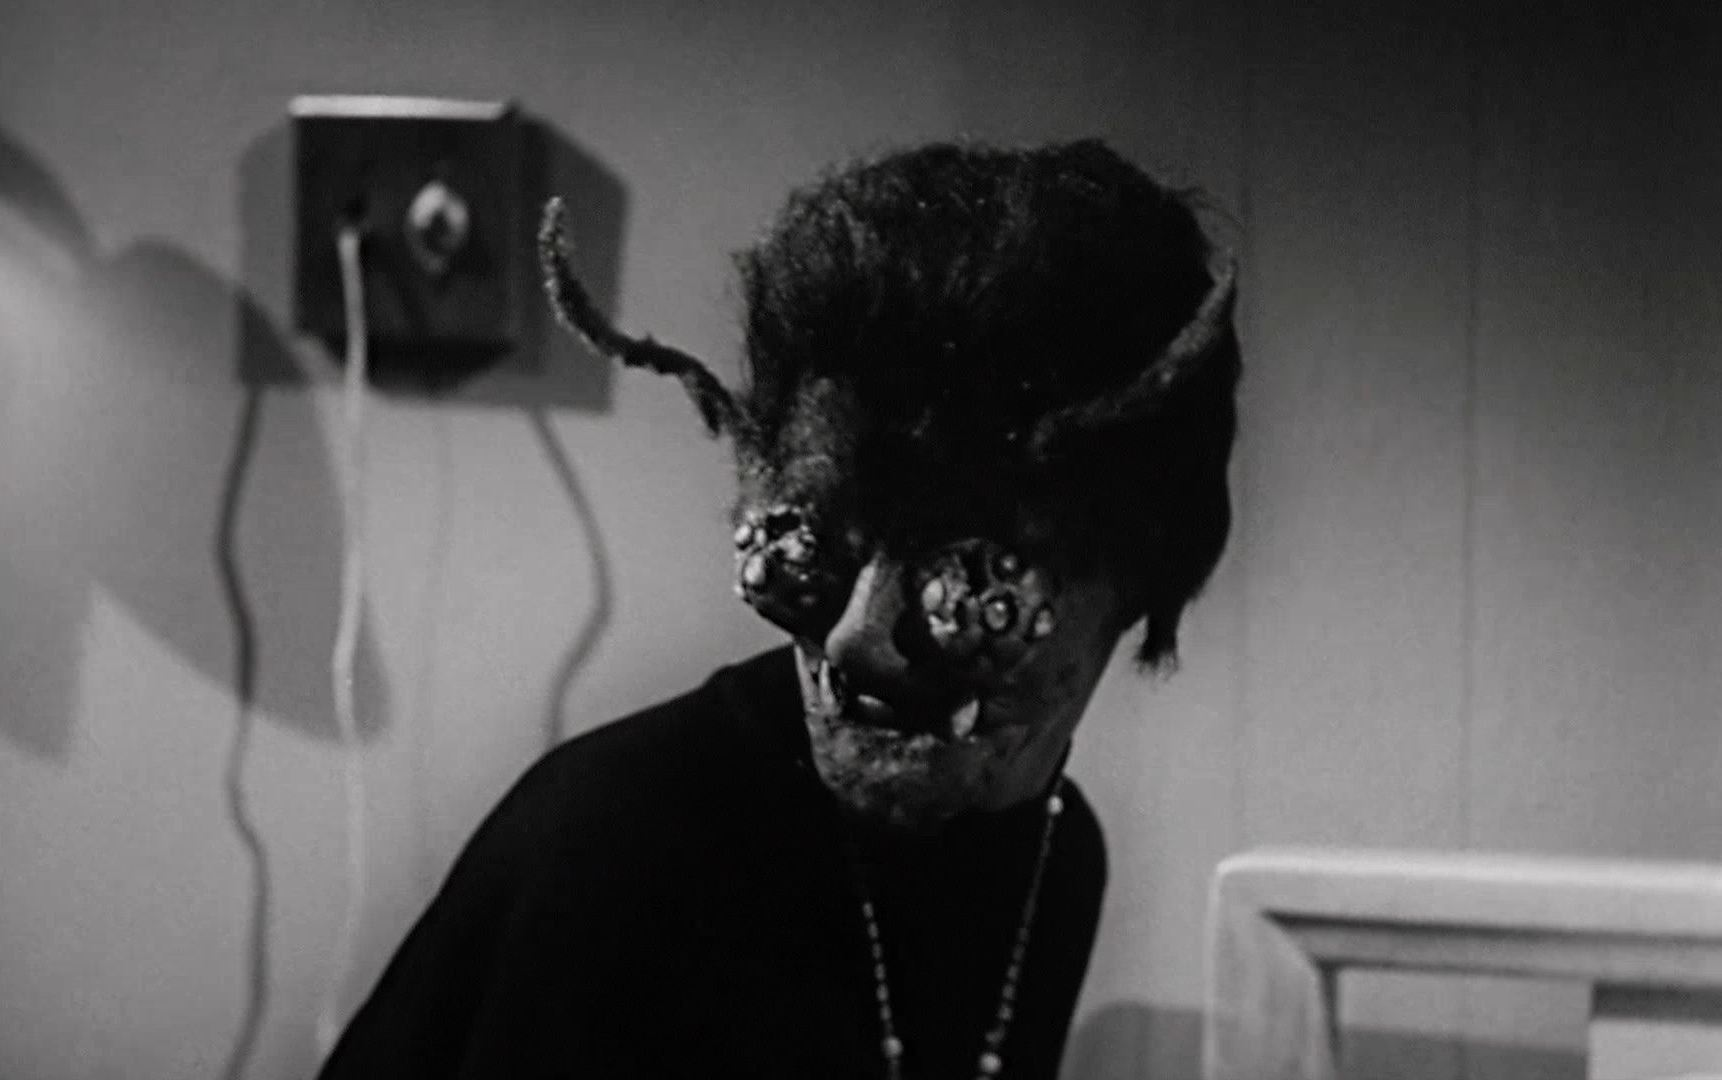 Susan Cabot as The Wasp Woman (1959)